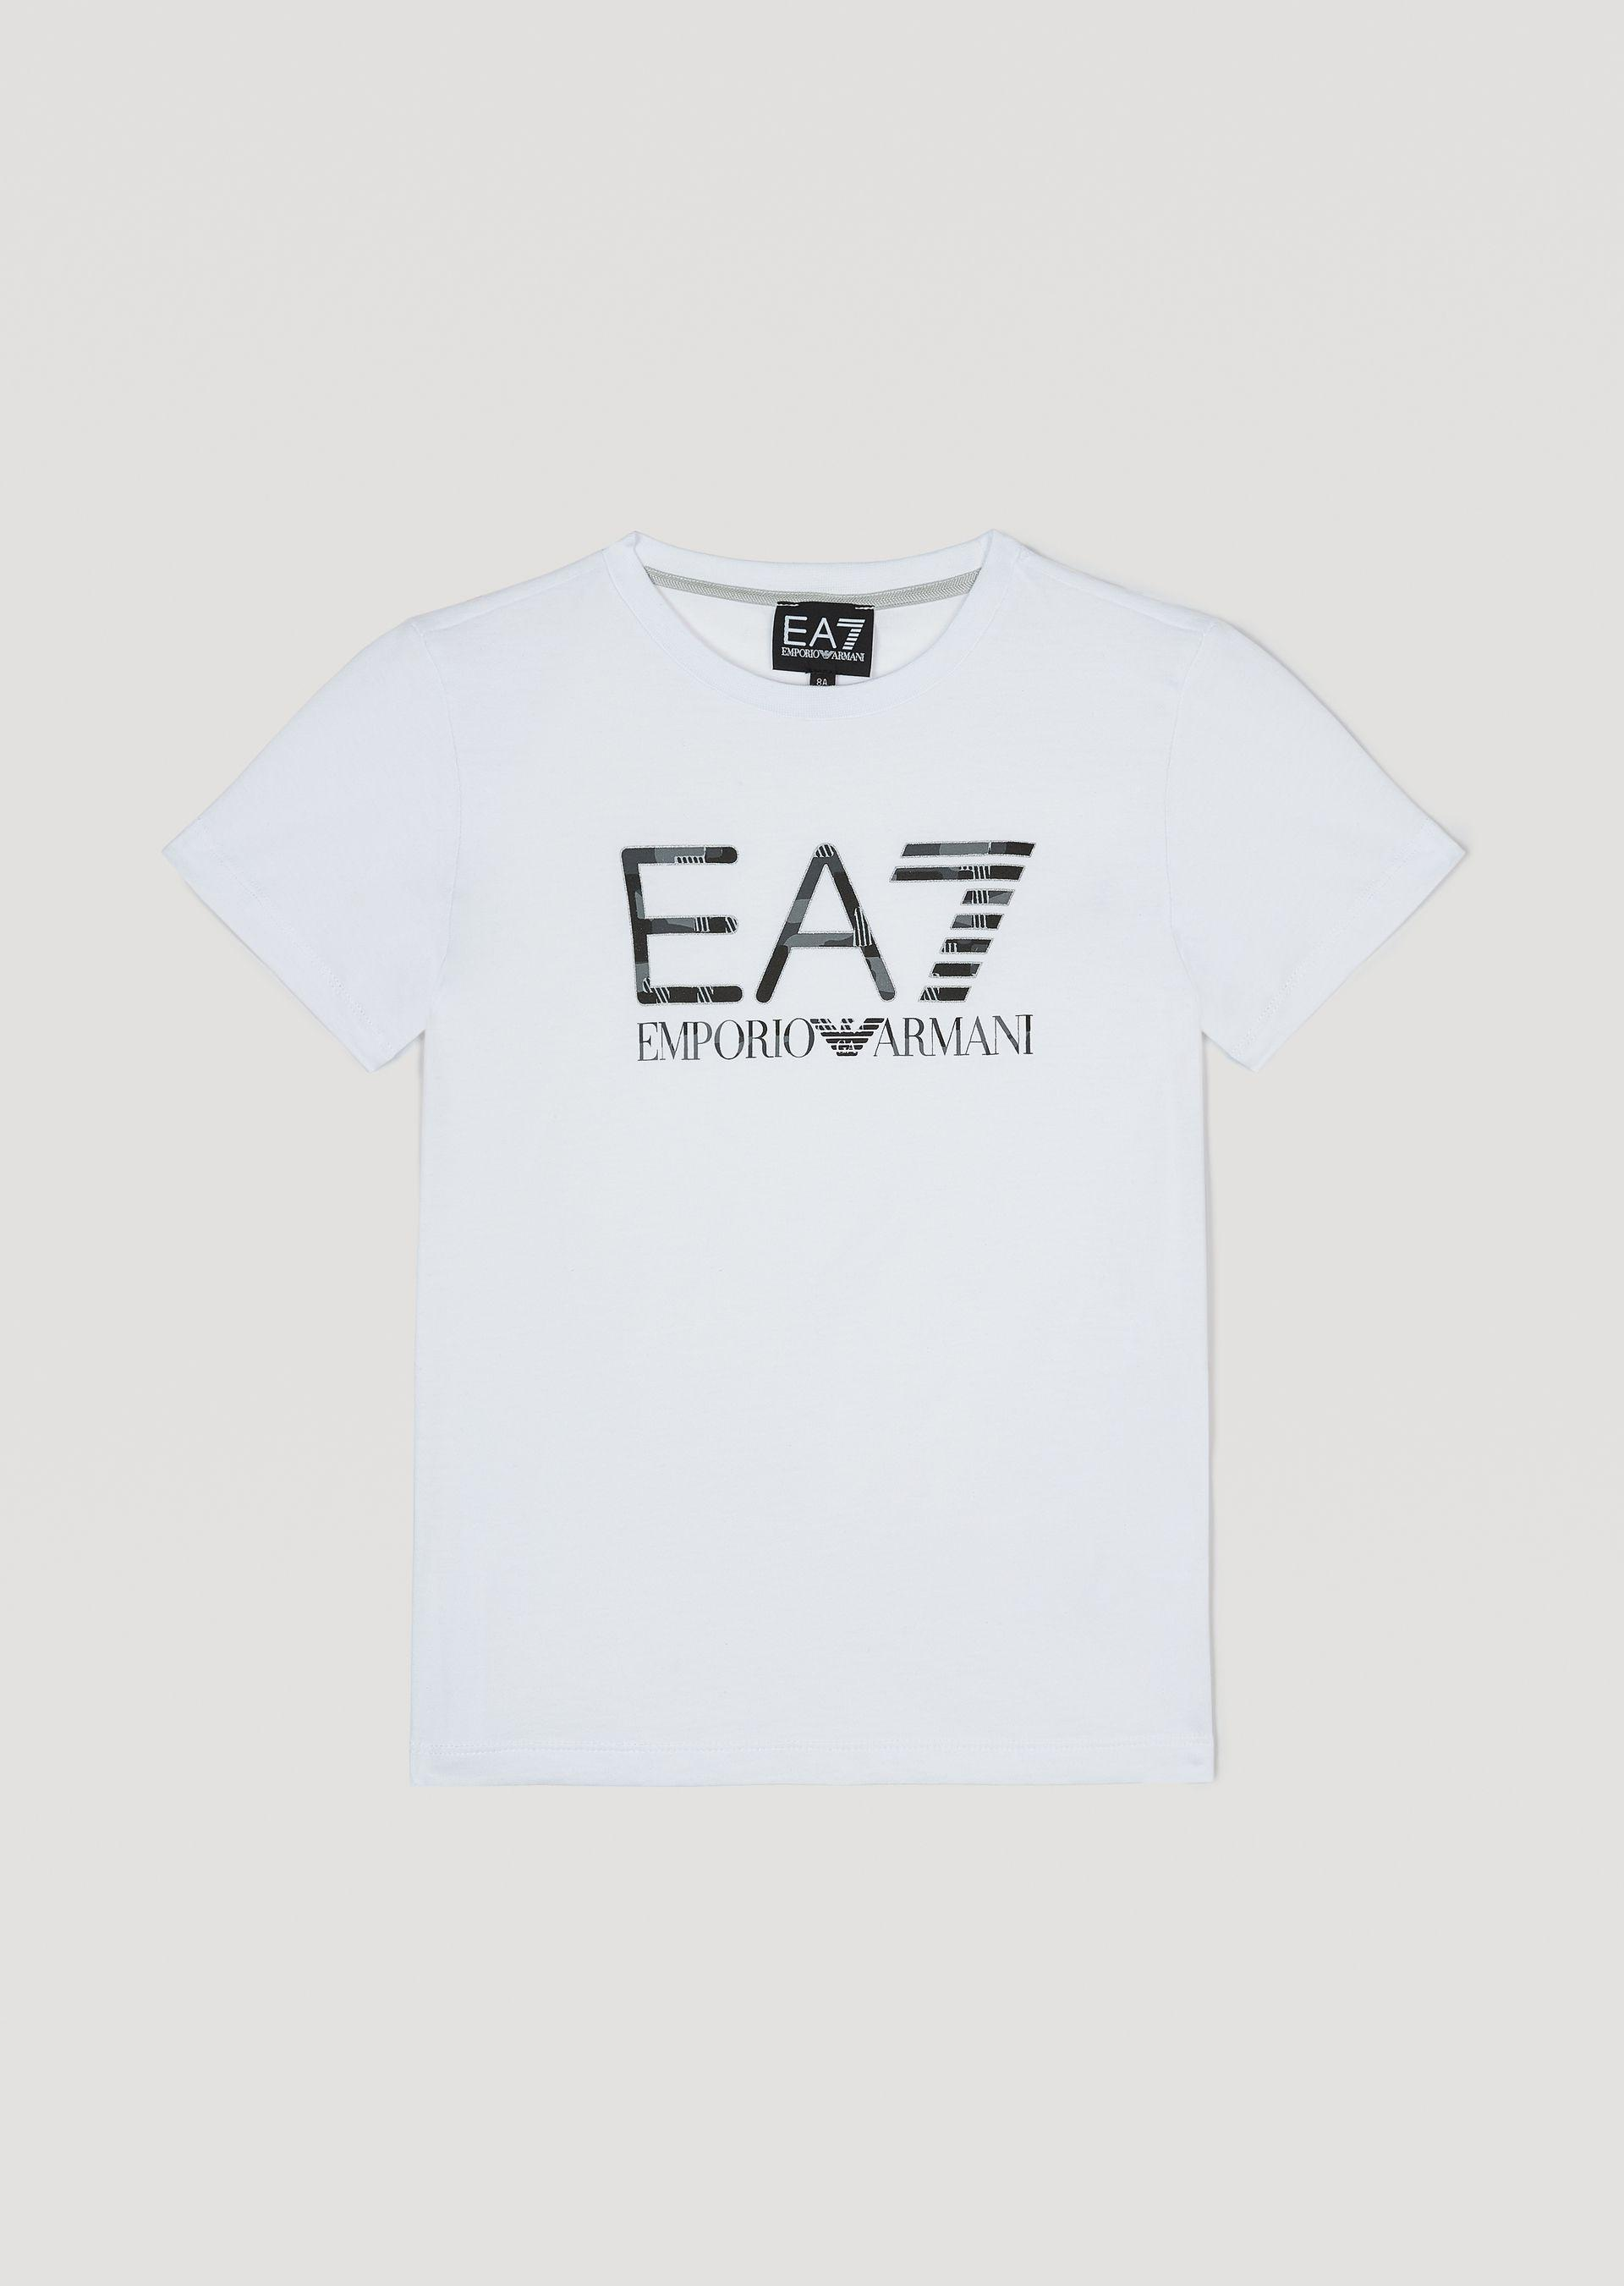 Emporio Armani T-shirts - Item 12160372 In Navy Blue